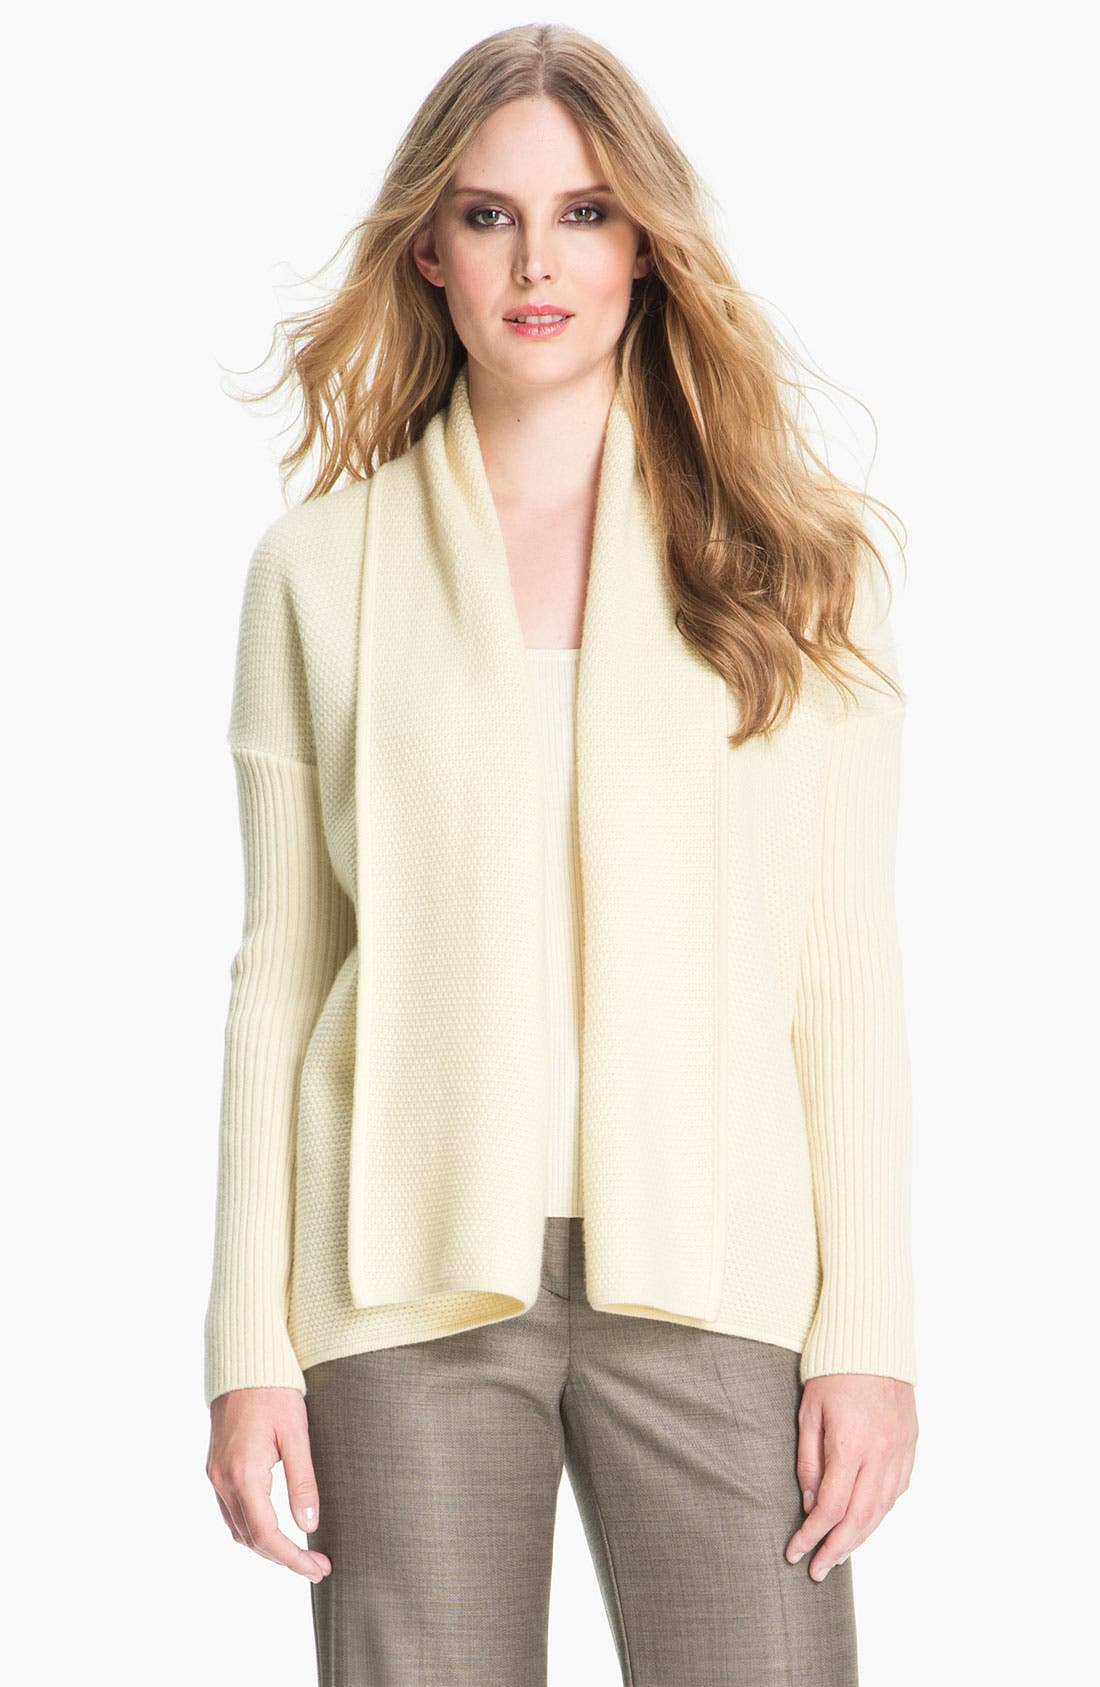 Alternate Image 1 Selected - St. John Yellow Label Popcorn Knit Cashmere Cardigan